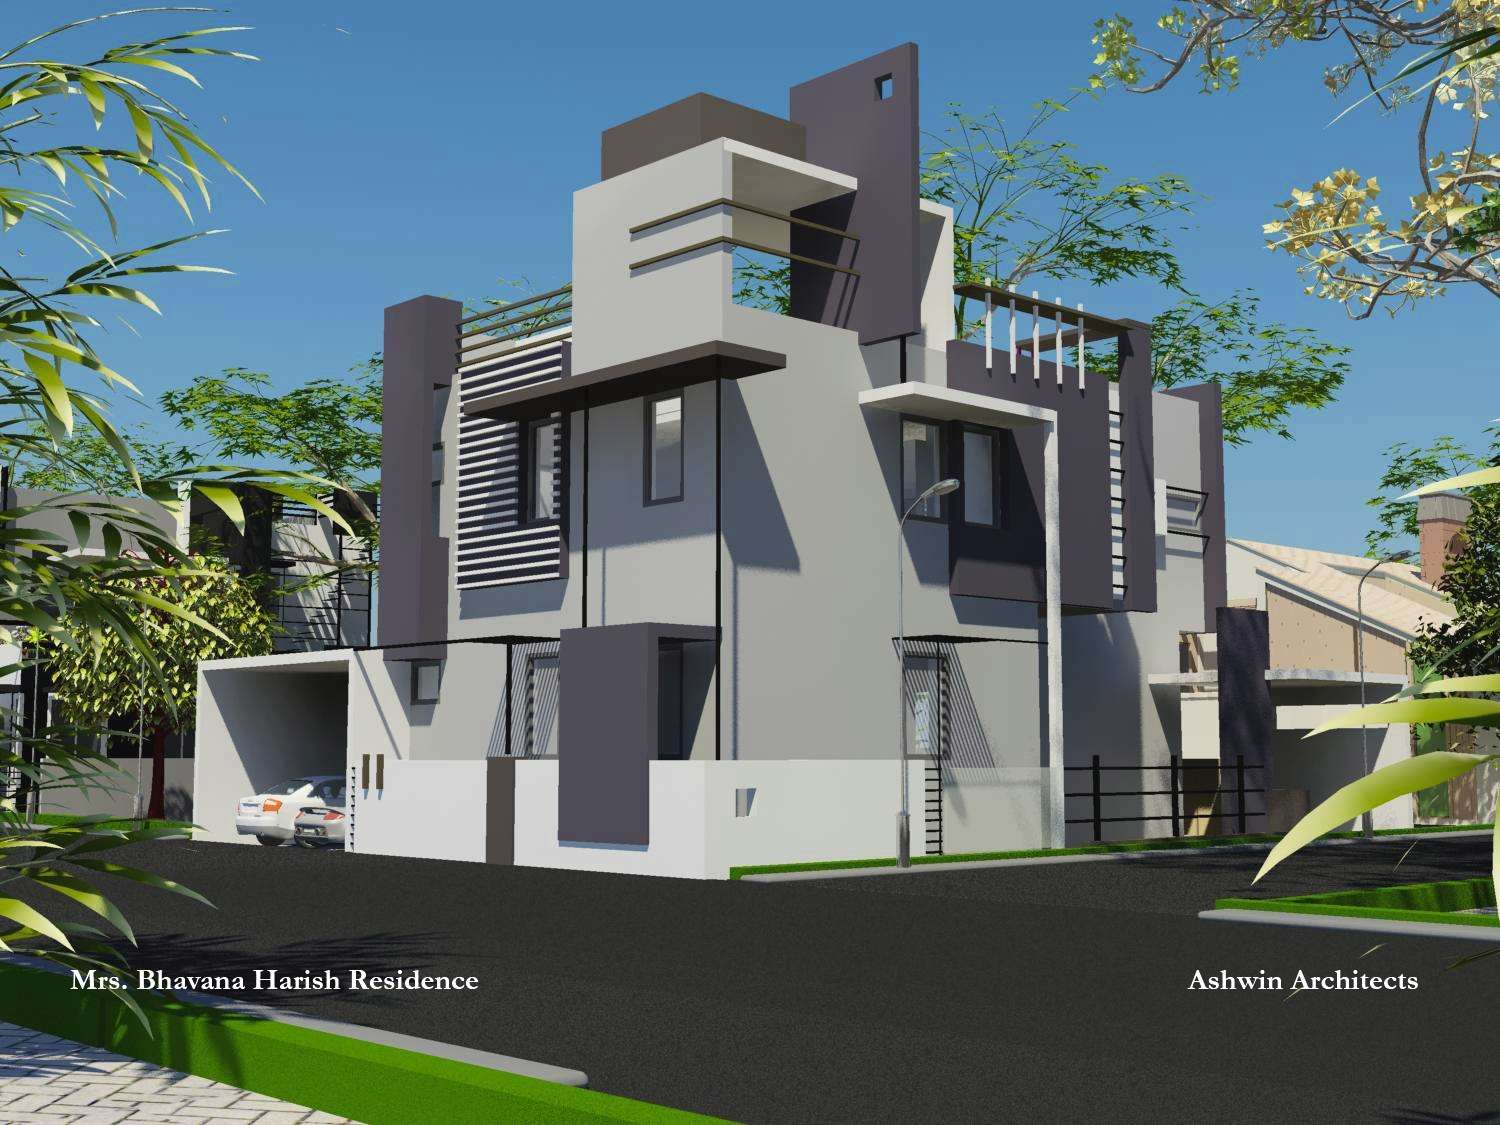 House Design Architecture Firm Bangalore Affordable Plans